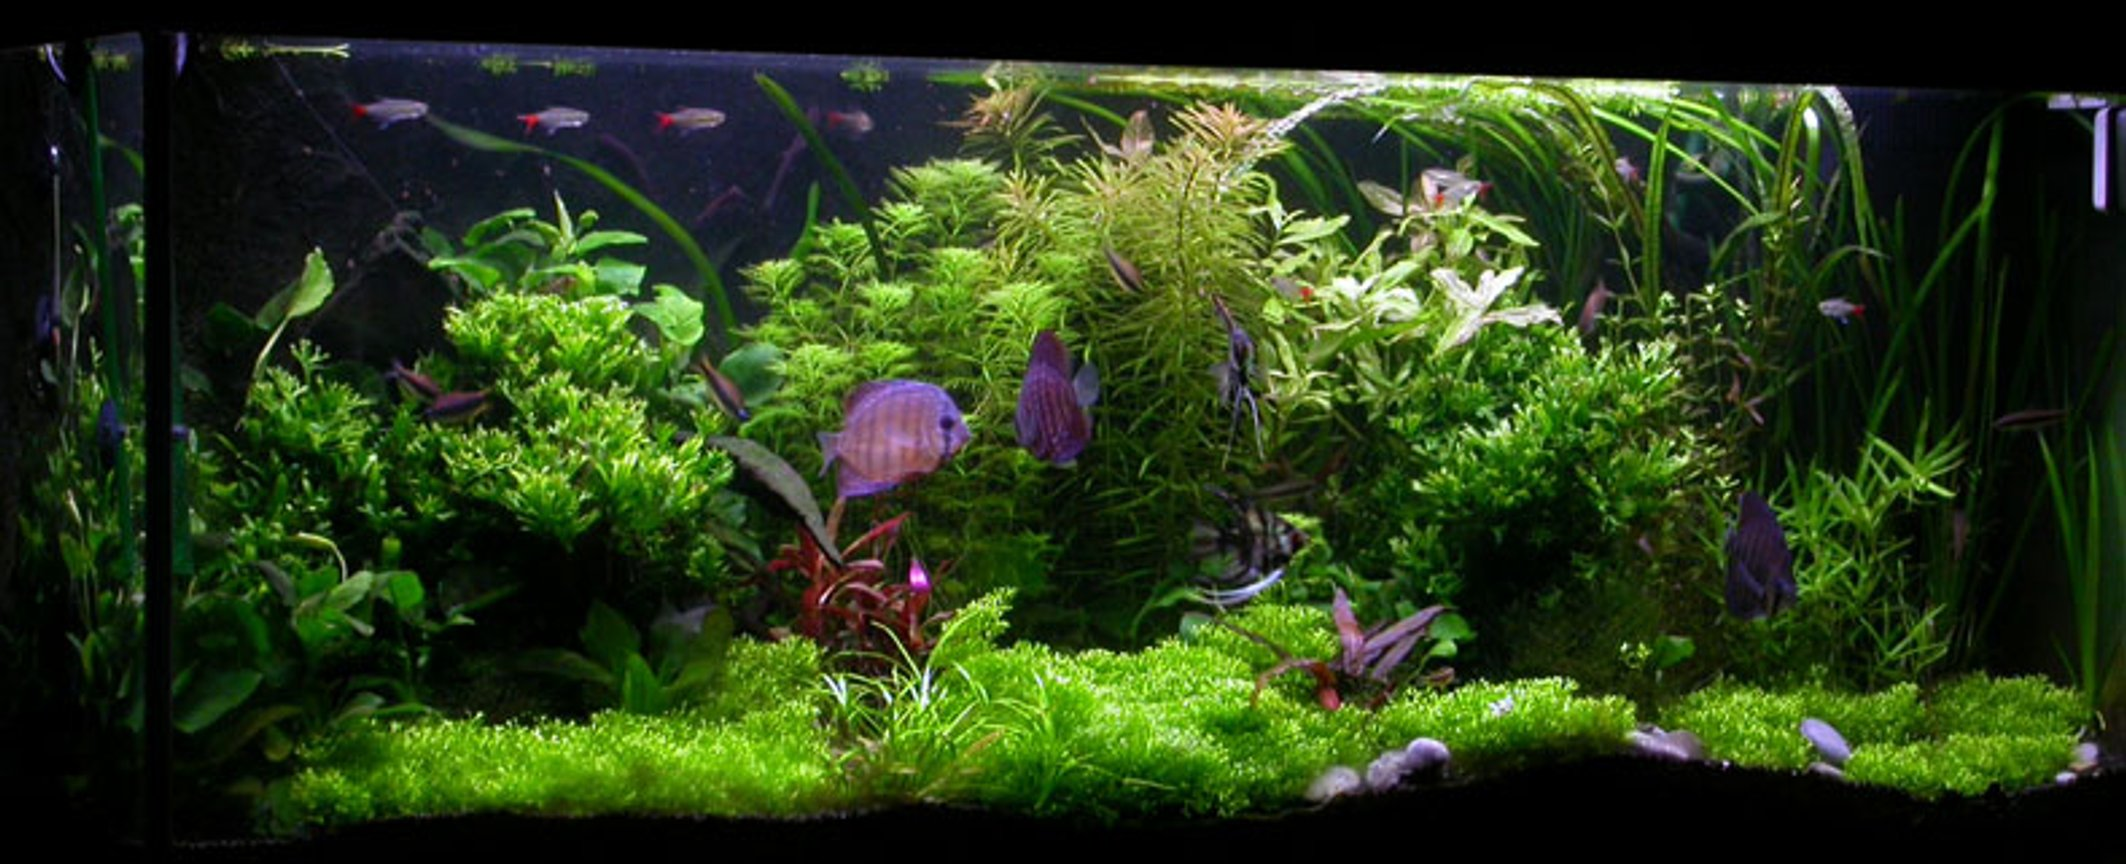 planted tank (mostly live plants and fish) - Here's my diskus tank.. enjoy.-